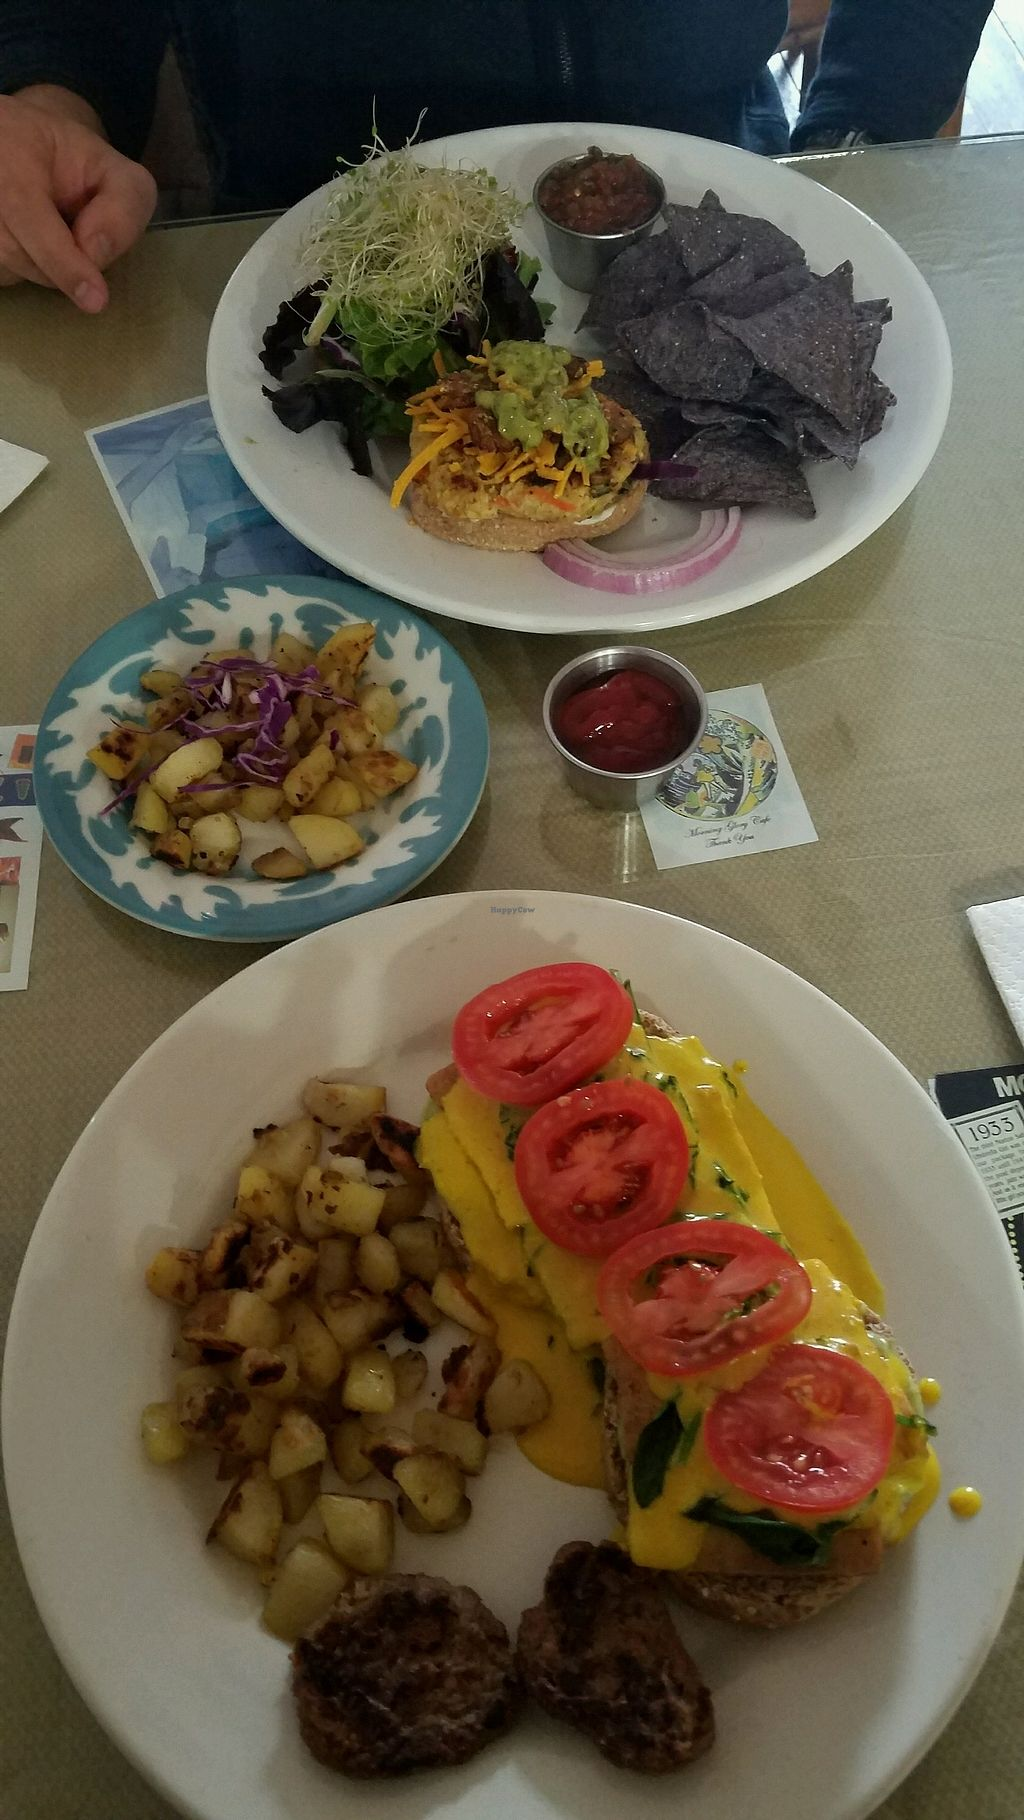 """Photo of Morning Glory Cafe  by <a href=""""/members/profile/KendraDeanne"""">KendraDeanne</a> <br/>Vegan Benedict and Hemp Burger  <br/> January 20, 2018  - <a href='/contact/abuse/image/19776/349064'>Report</a>"""